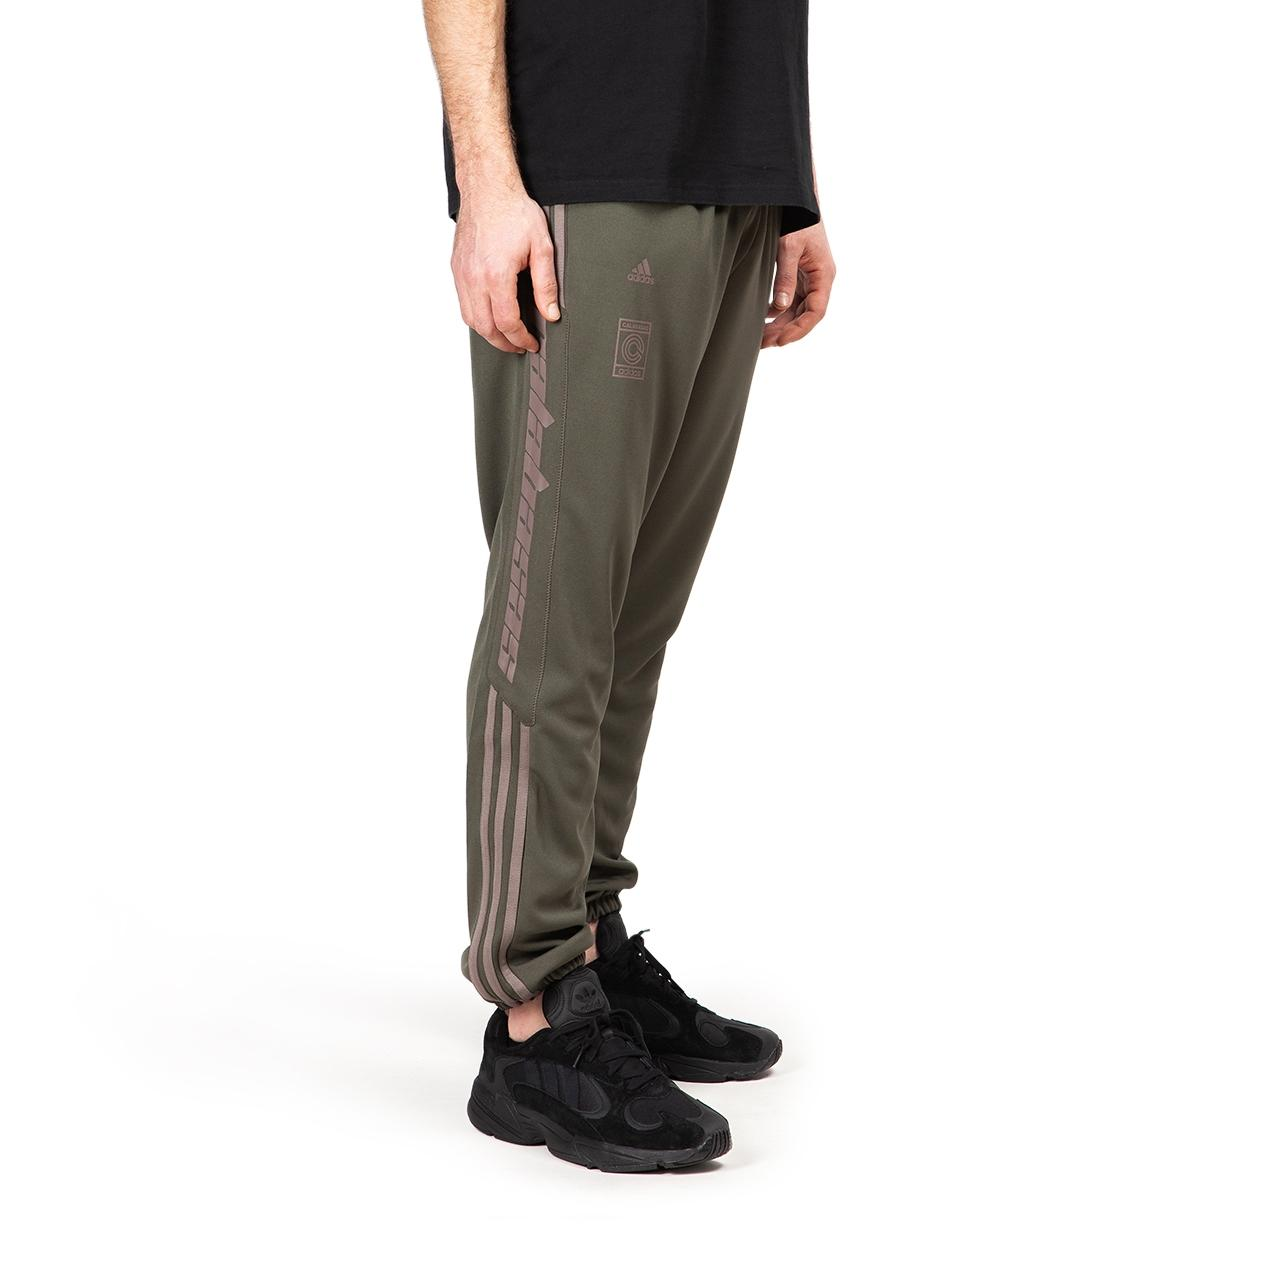 346029ea9 Adidas - Green Yeezy Calabasas Track Pant for Men - Lyst. View fullscreen